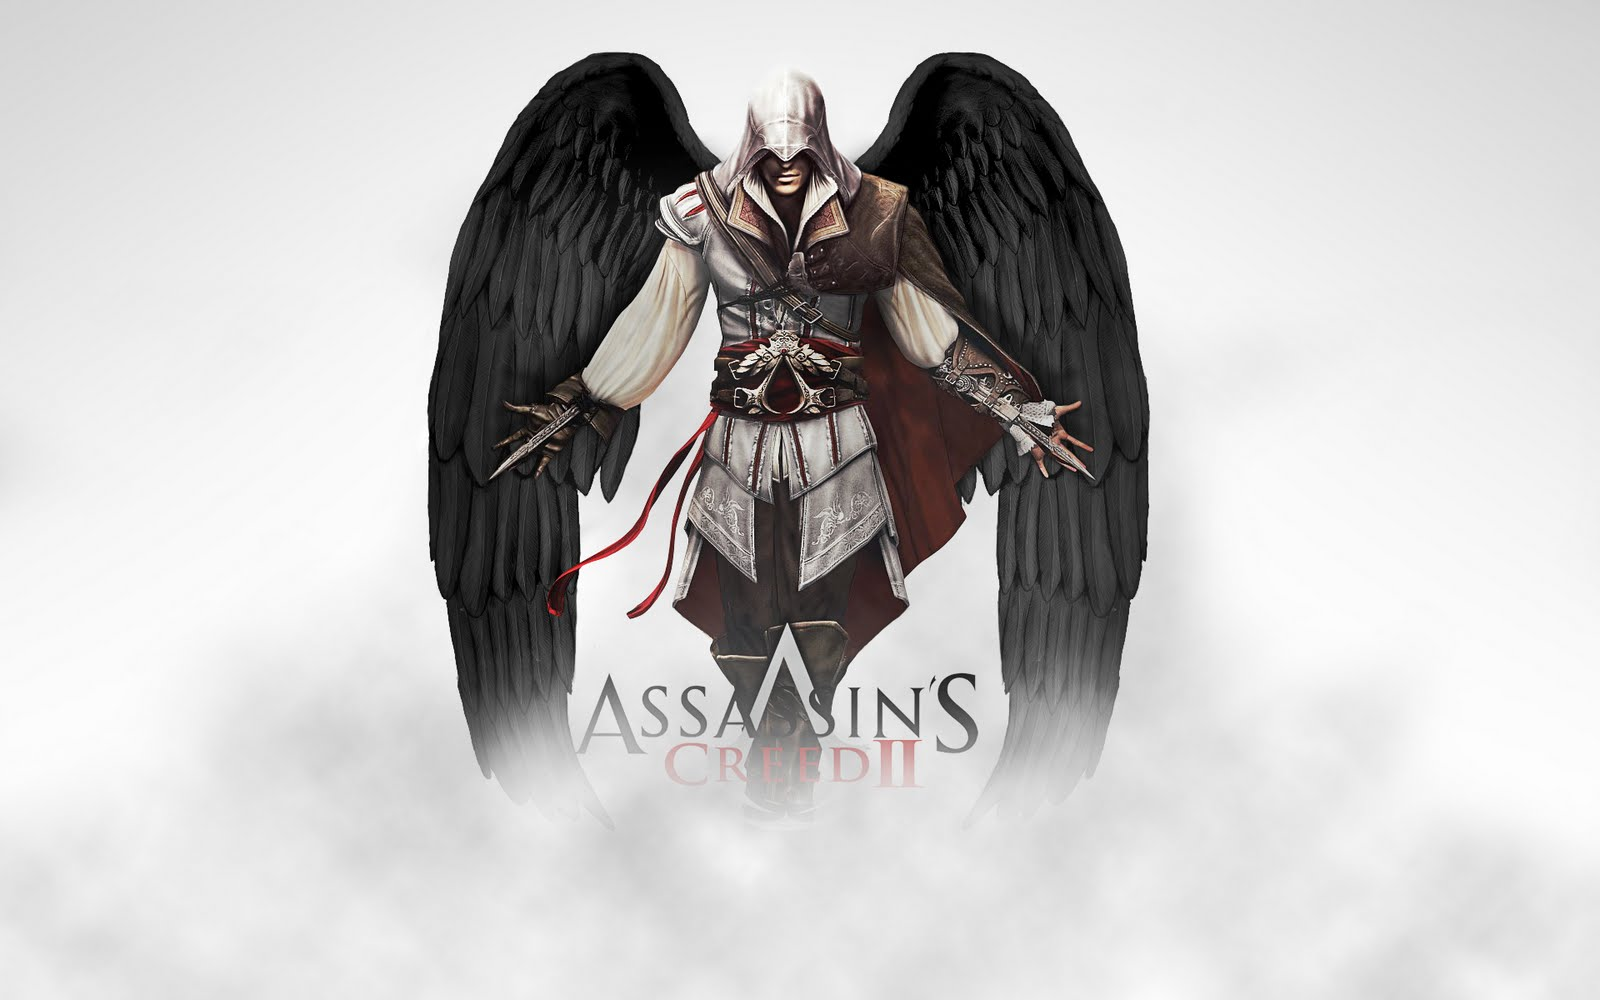 http://3.bp.blogspot.com/_j6hb7P0UBkc/TN8seyoGRRI/AAAAAAAAAD0/5d4HQsd0HsA/s1600/Assassins_Creed_2_Ezio_Simple_by_b4ttery.jpg